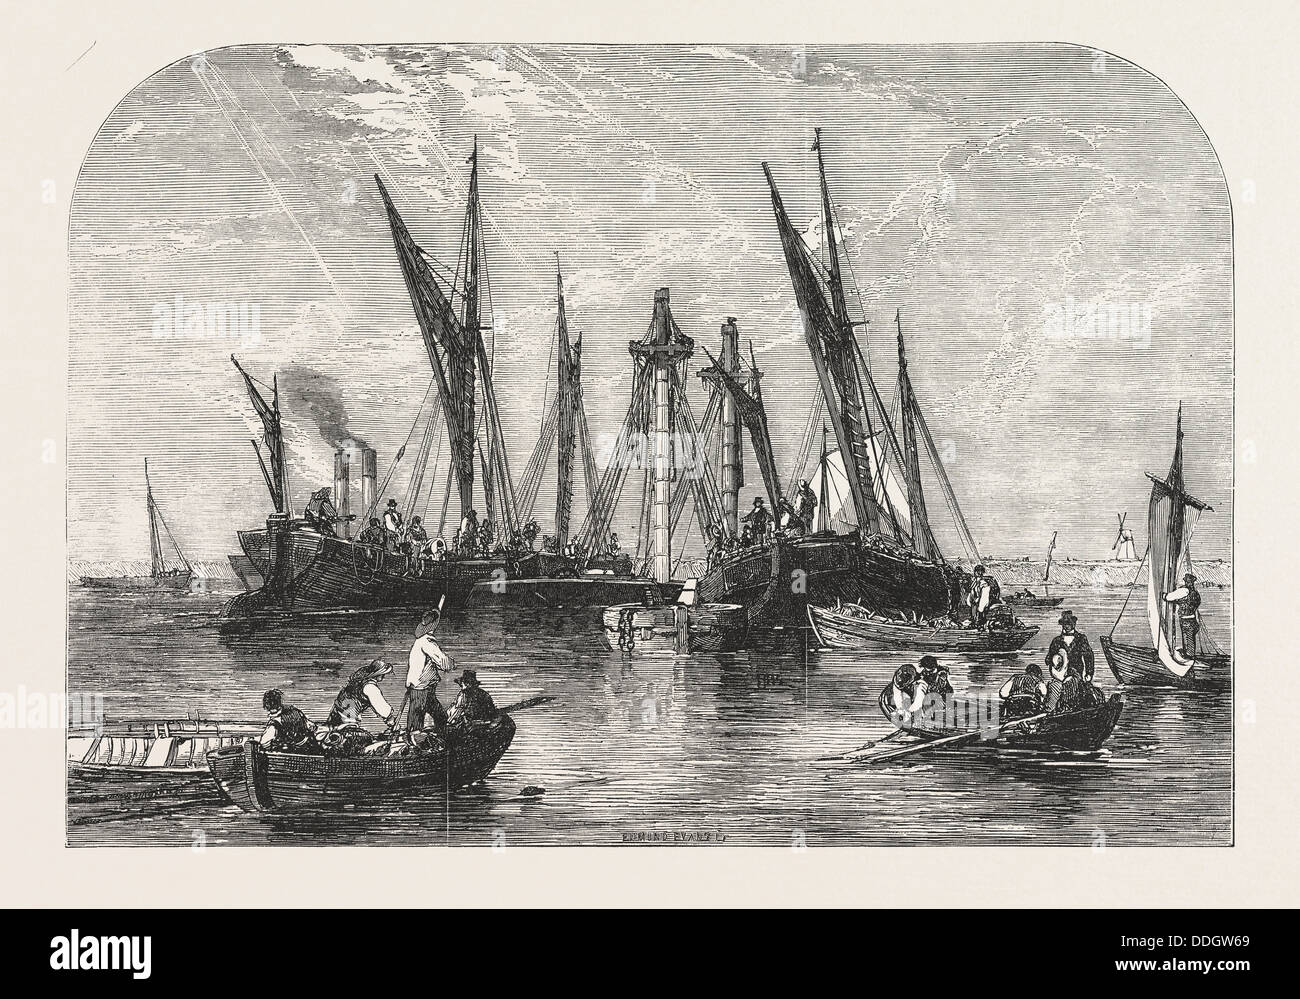 THE RAISING OF THE BARQUE 'SAMUEL,' IN THE THAMES, UK, 1855 - Stock Image